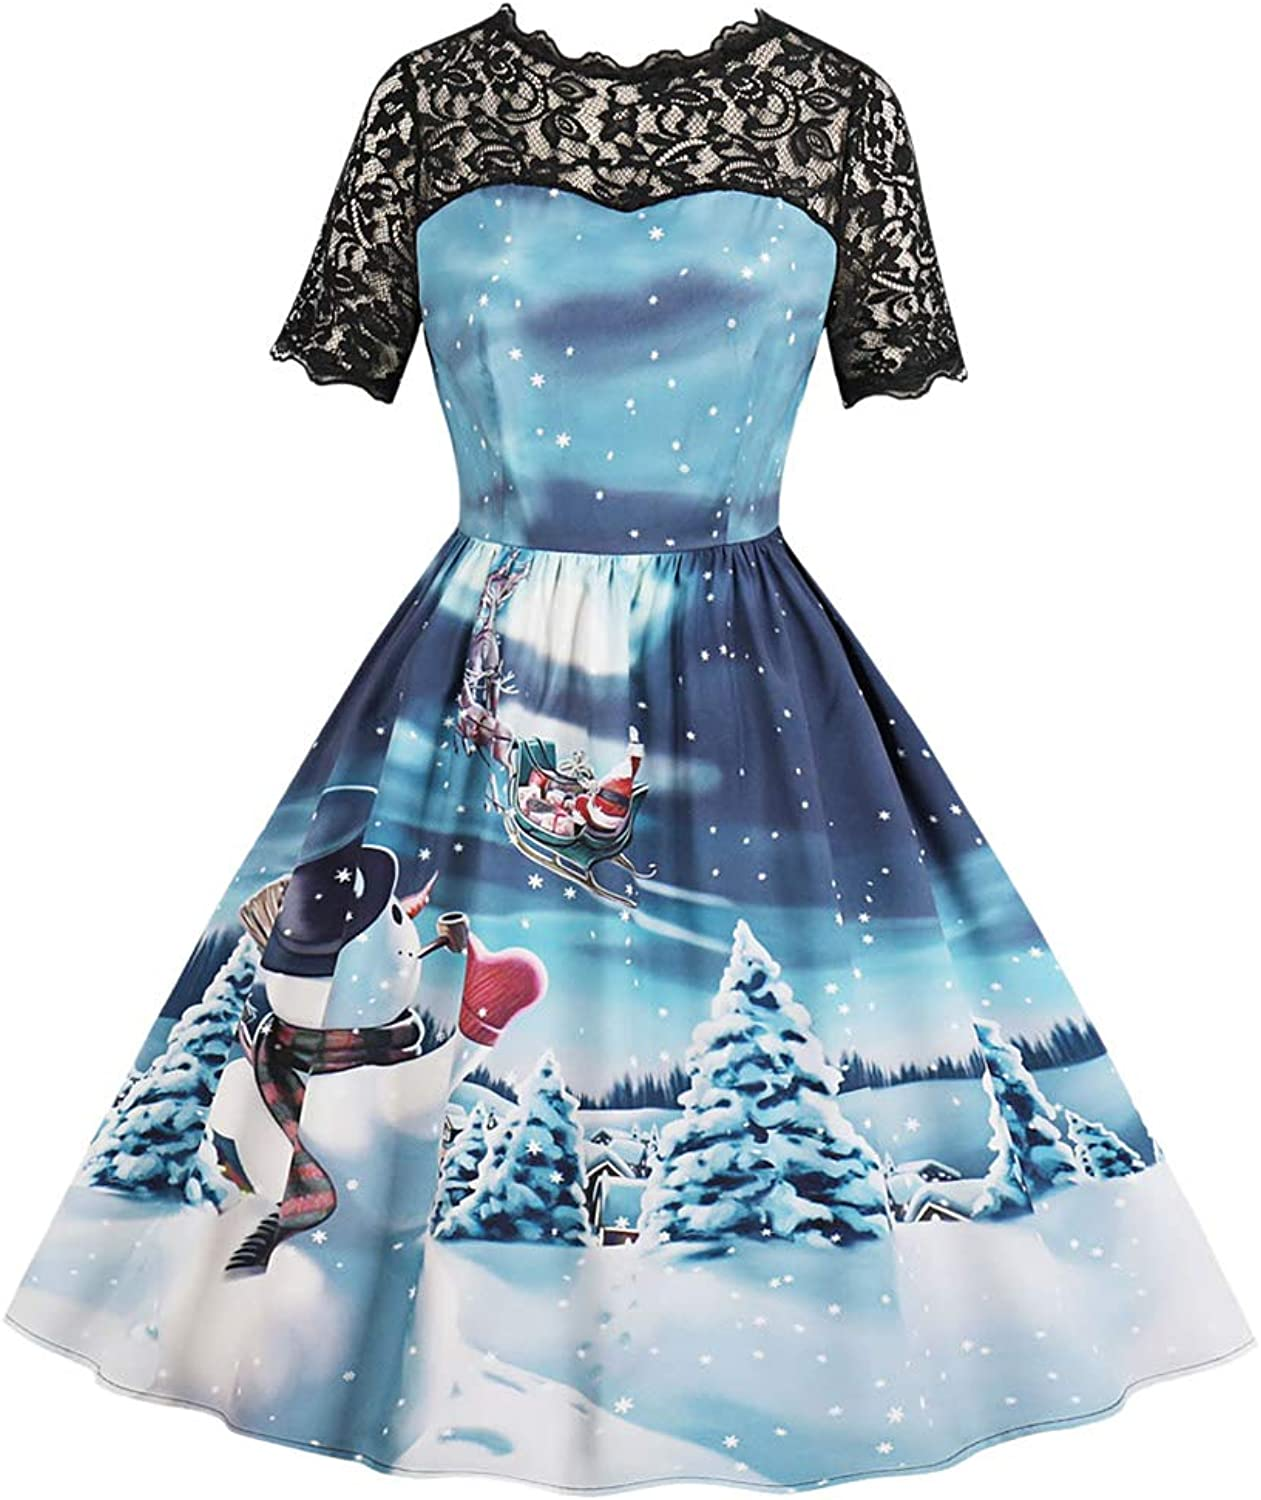 FUZHUANGHM Christmas Print Women Dress Round Collar Short Sleeves Lace Party Dress